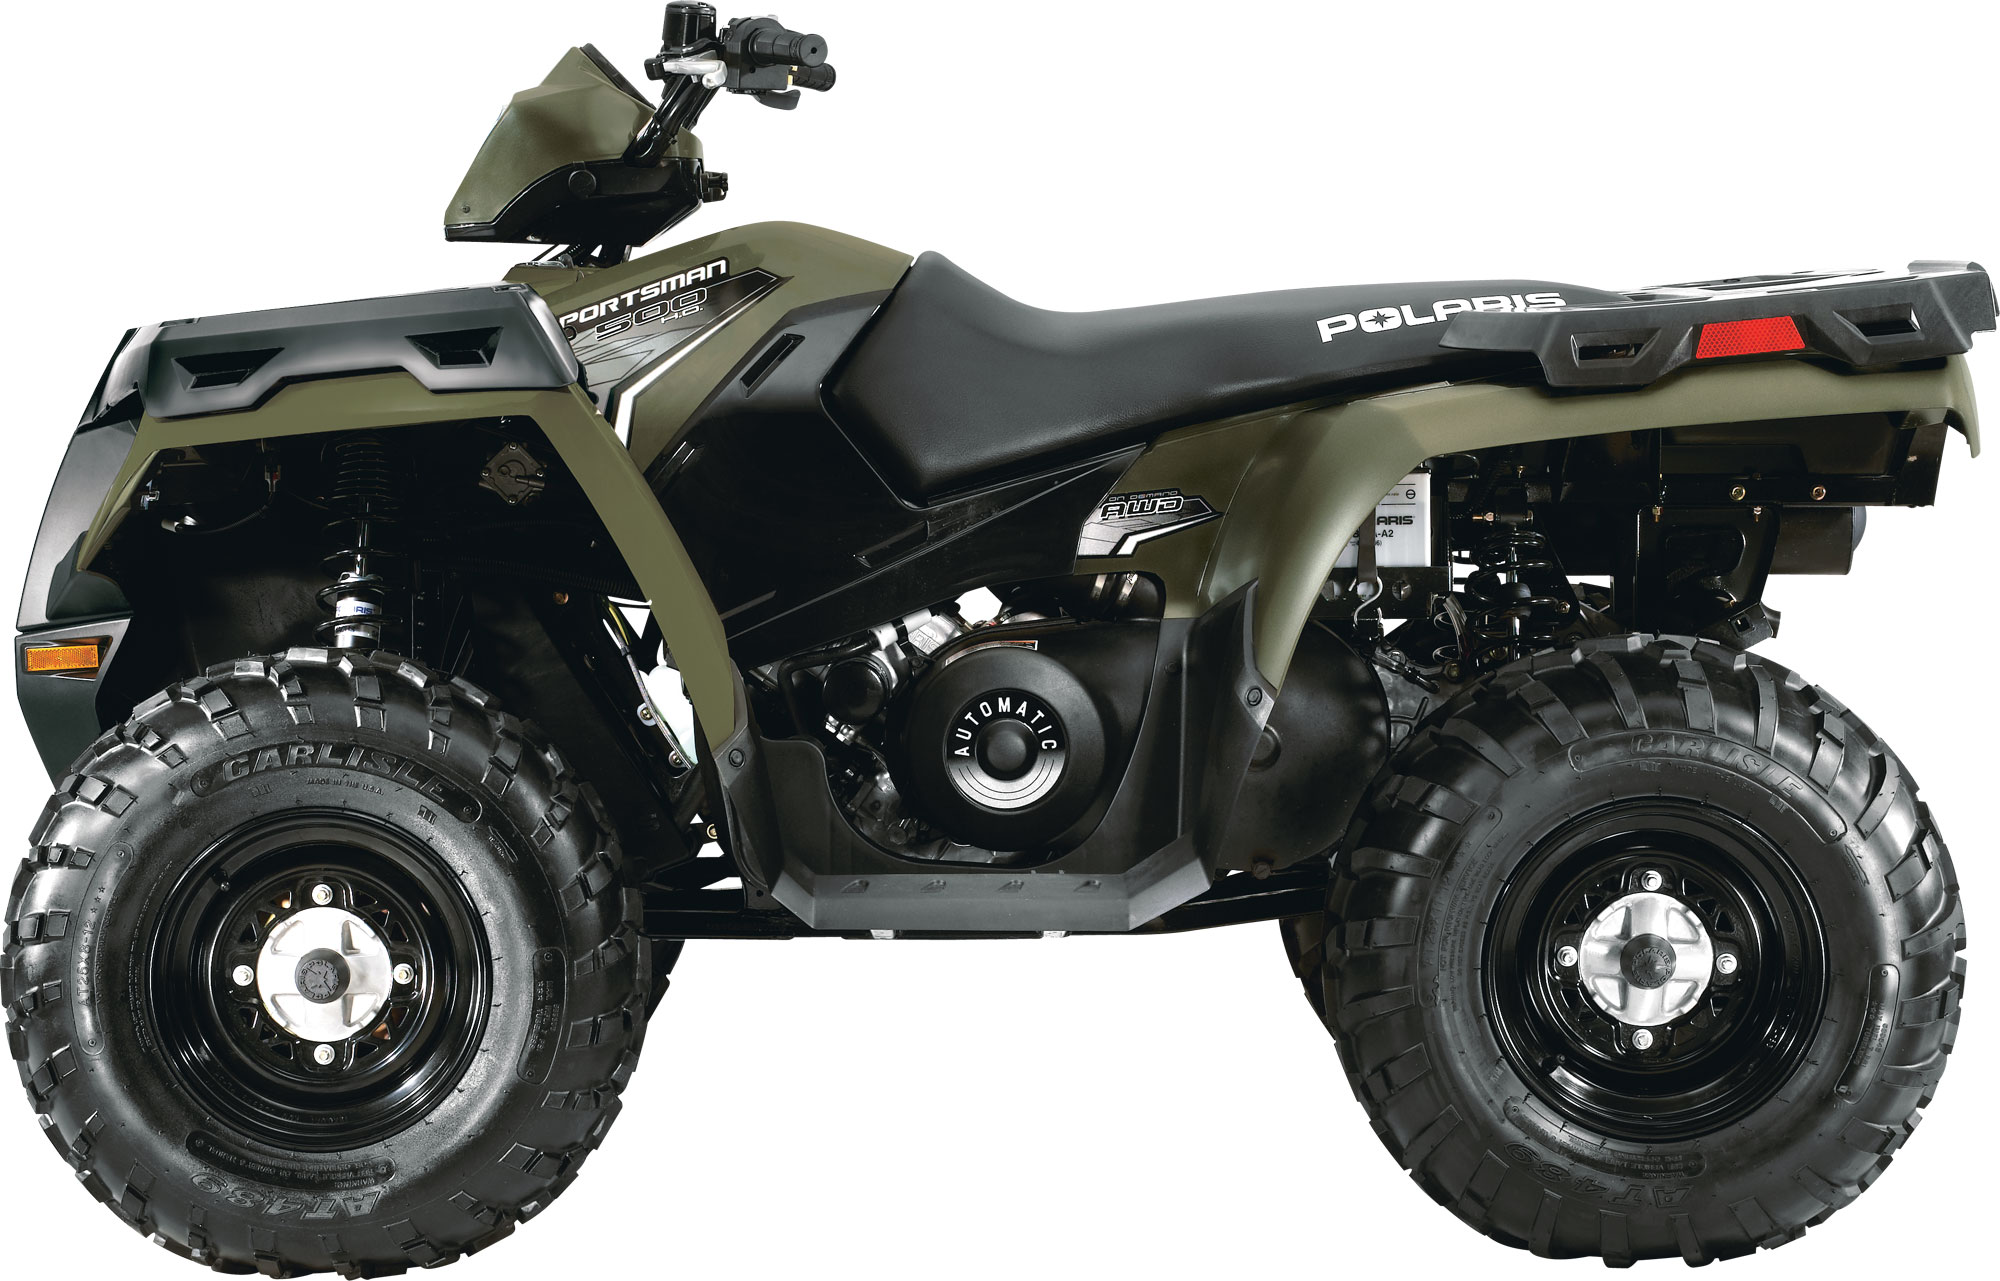 Polaris Sportsman 500 H.O 2000 images #120693